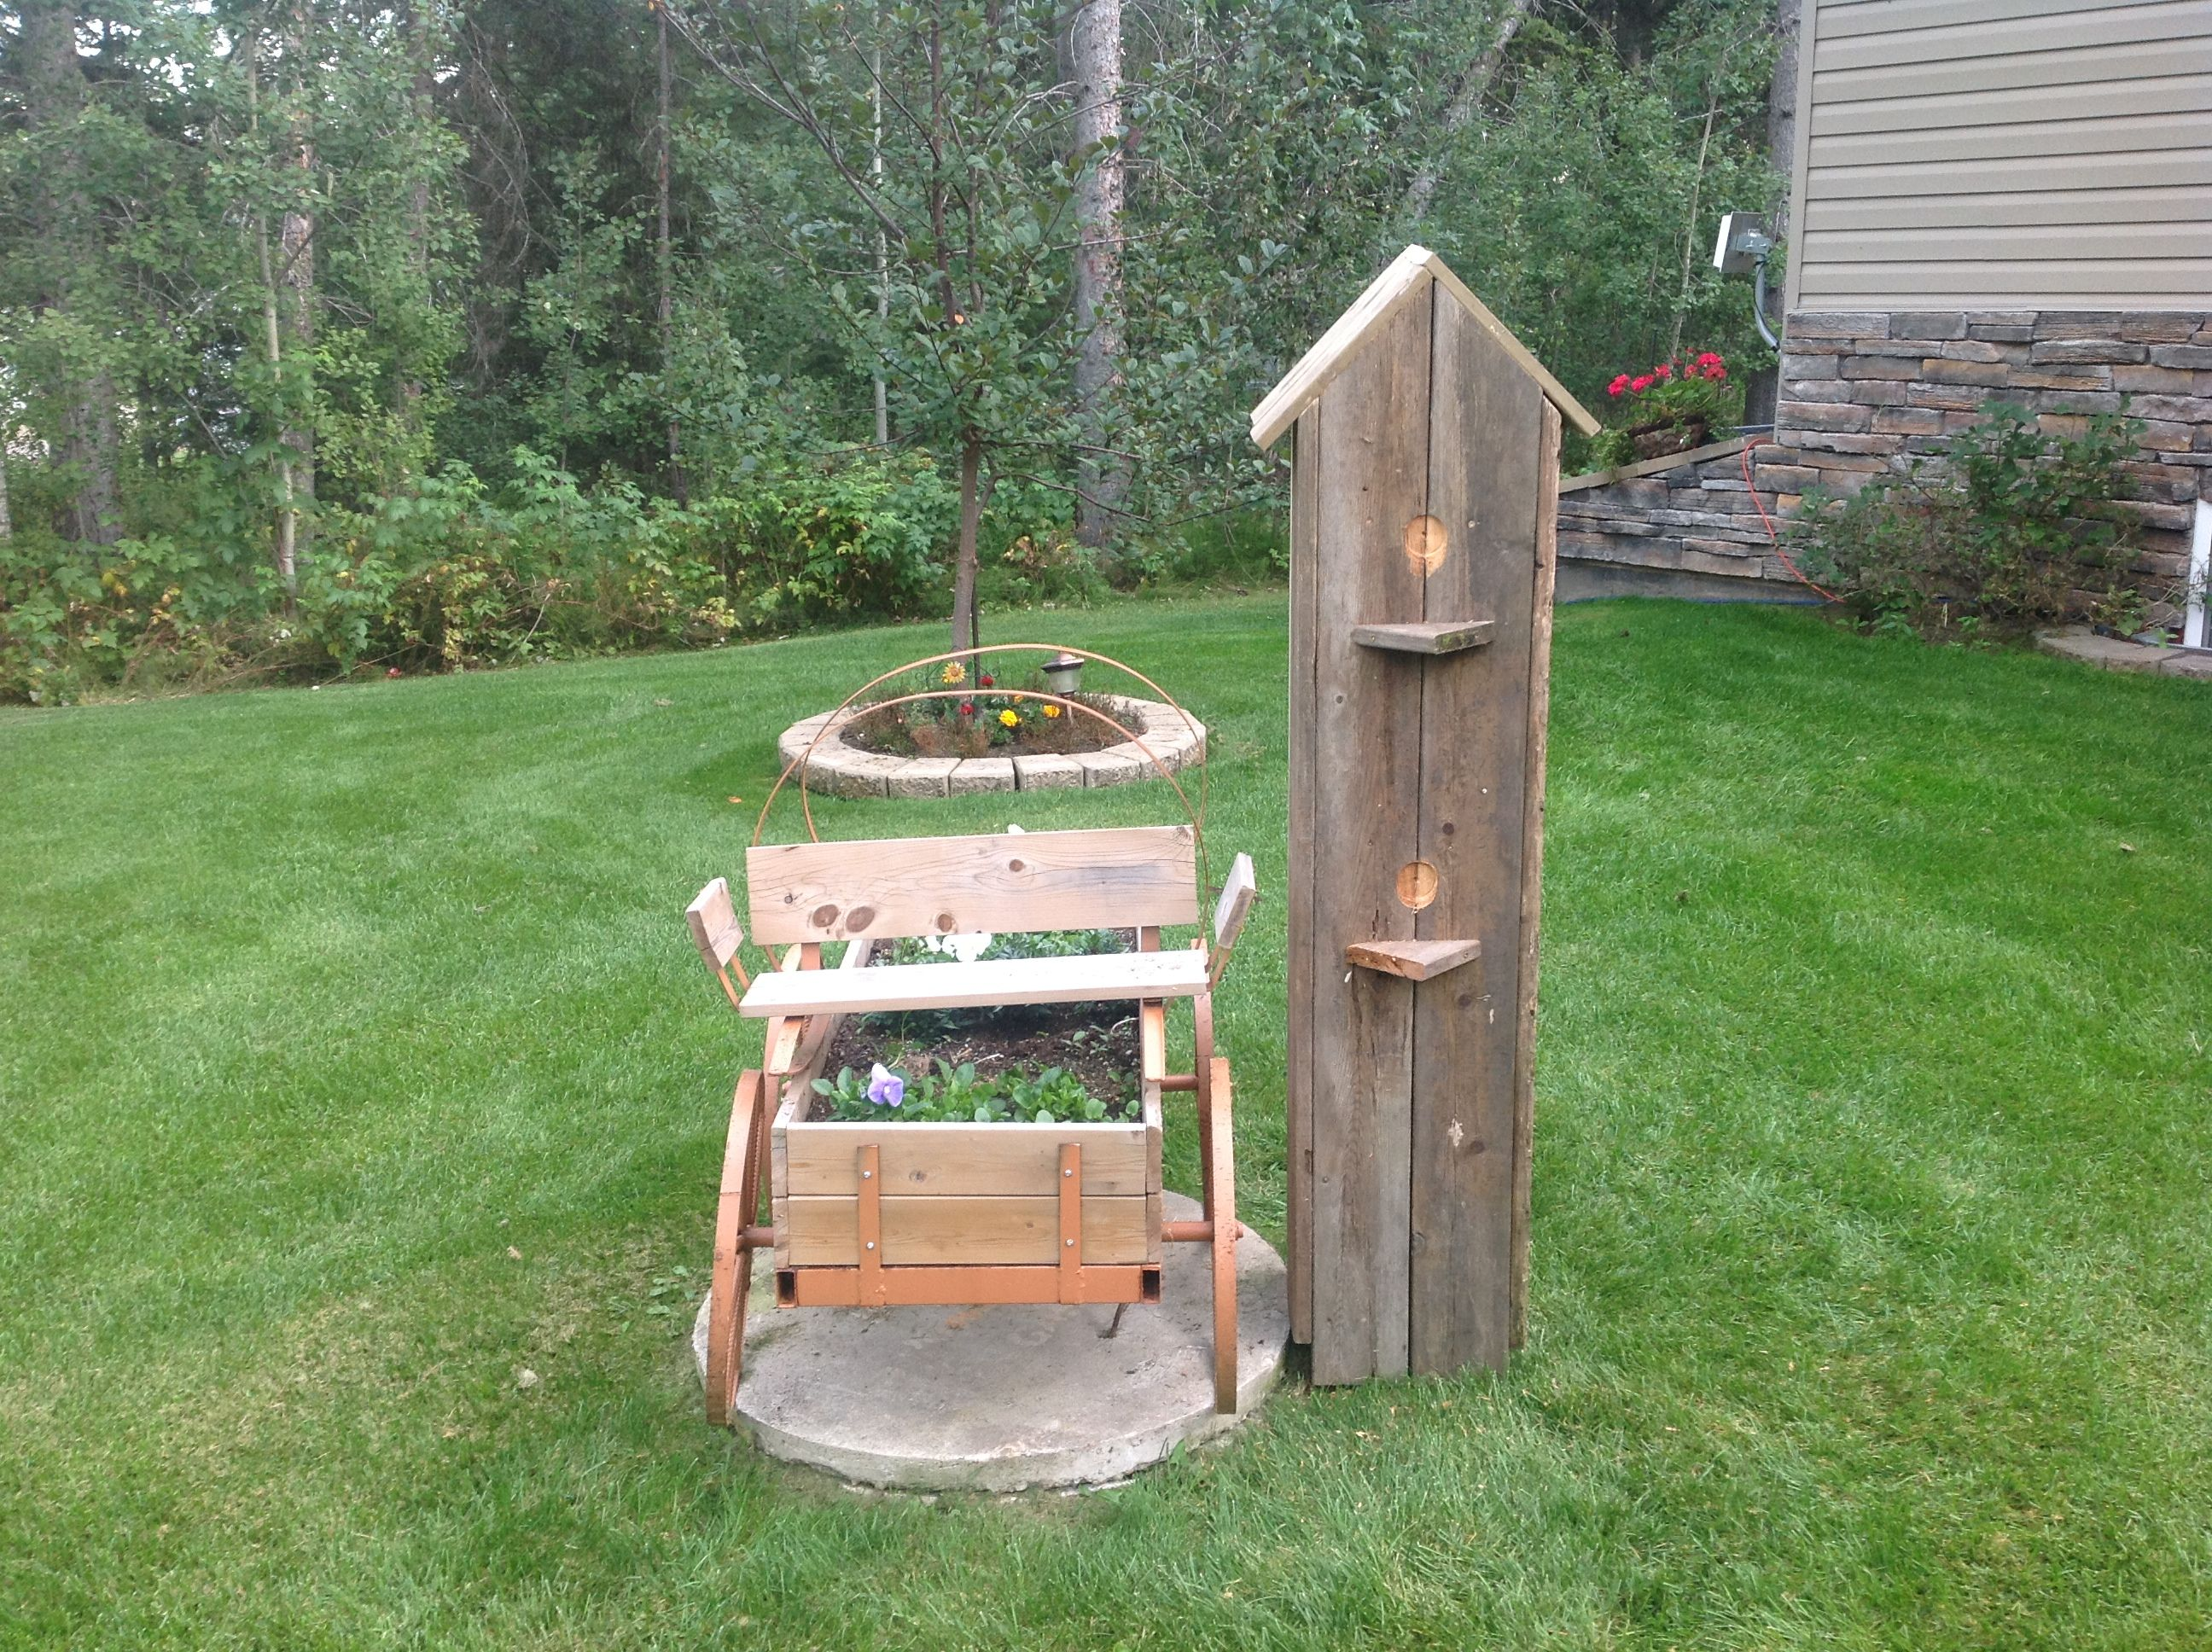 chuckwagon with flowers on a septic tank lid and a handmade birdhouse to cover the electrical